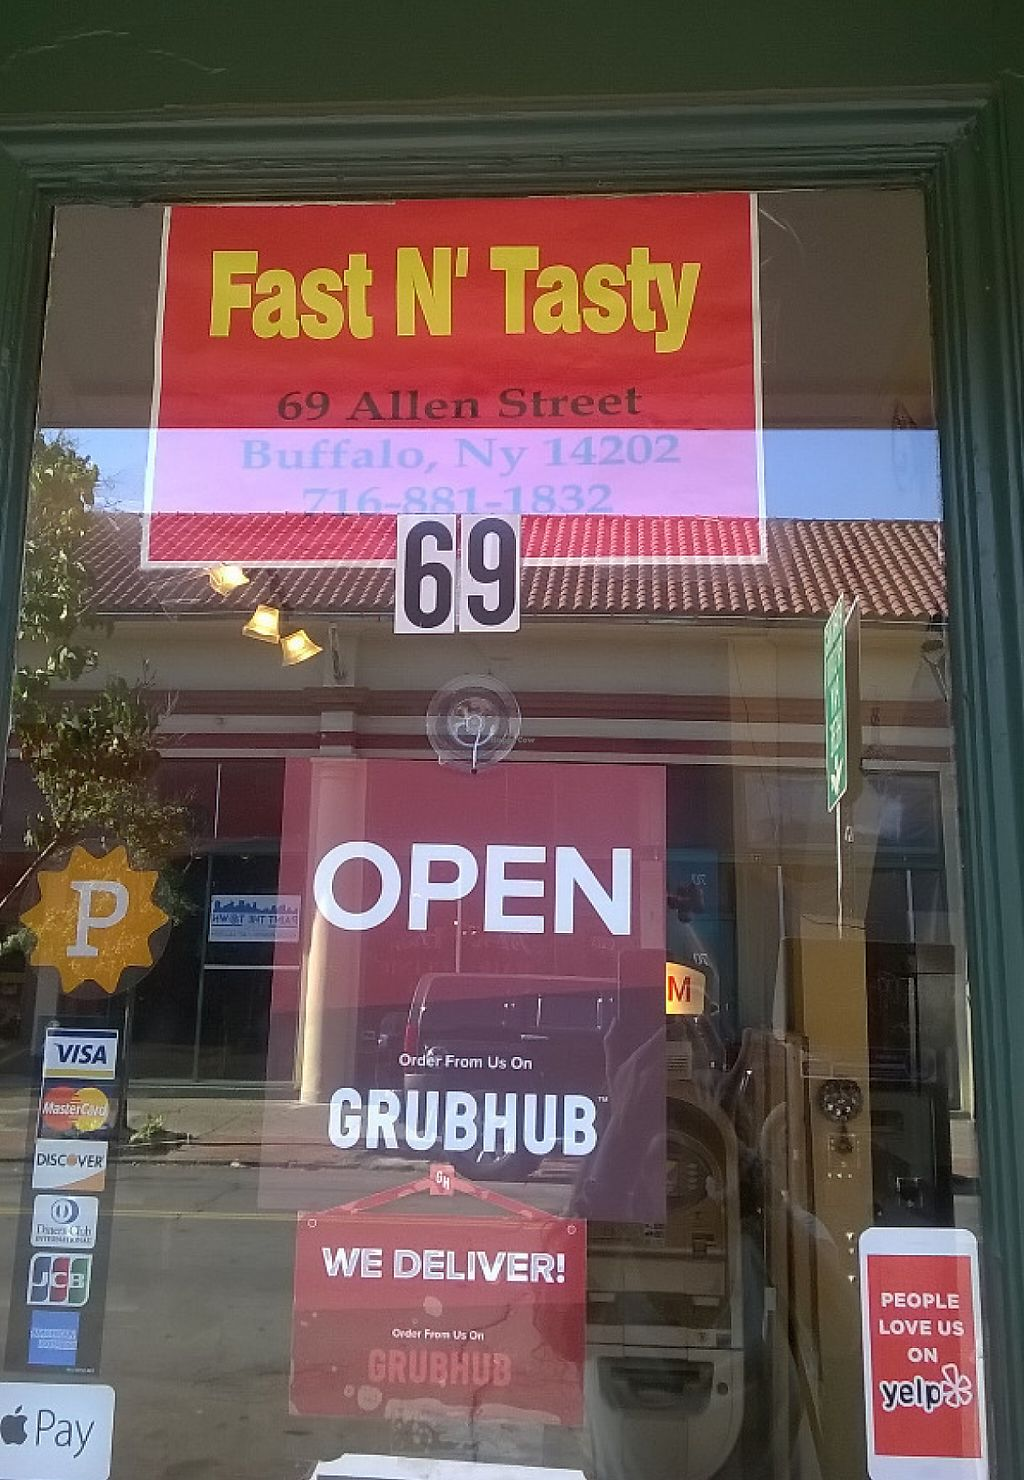 """Photo of Fast N' Tasty  by <a href=""""/members/profile/veganindunkirk"""">veganindunkirk</a> <br/>GATUR'S HAS A NEW NAME!!!  They said they had to change the name for business/tax purposes so take note -- it's now Fast N' Tasty.  Same location and same food <br/> July 16, 2016  - <a href='/contact/abuse/image/36559/209796'>Report</a>"""